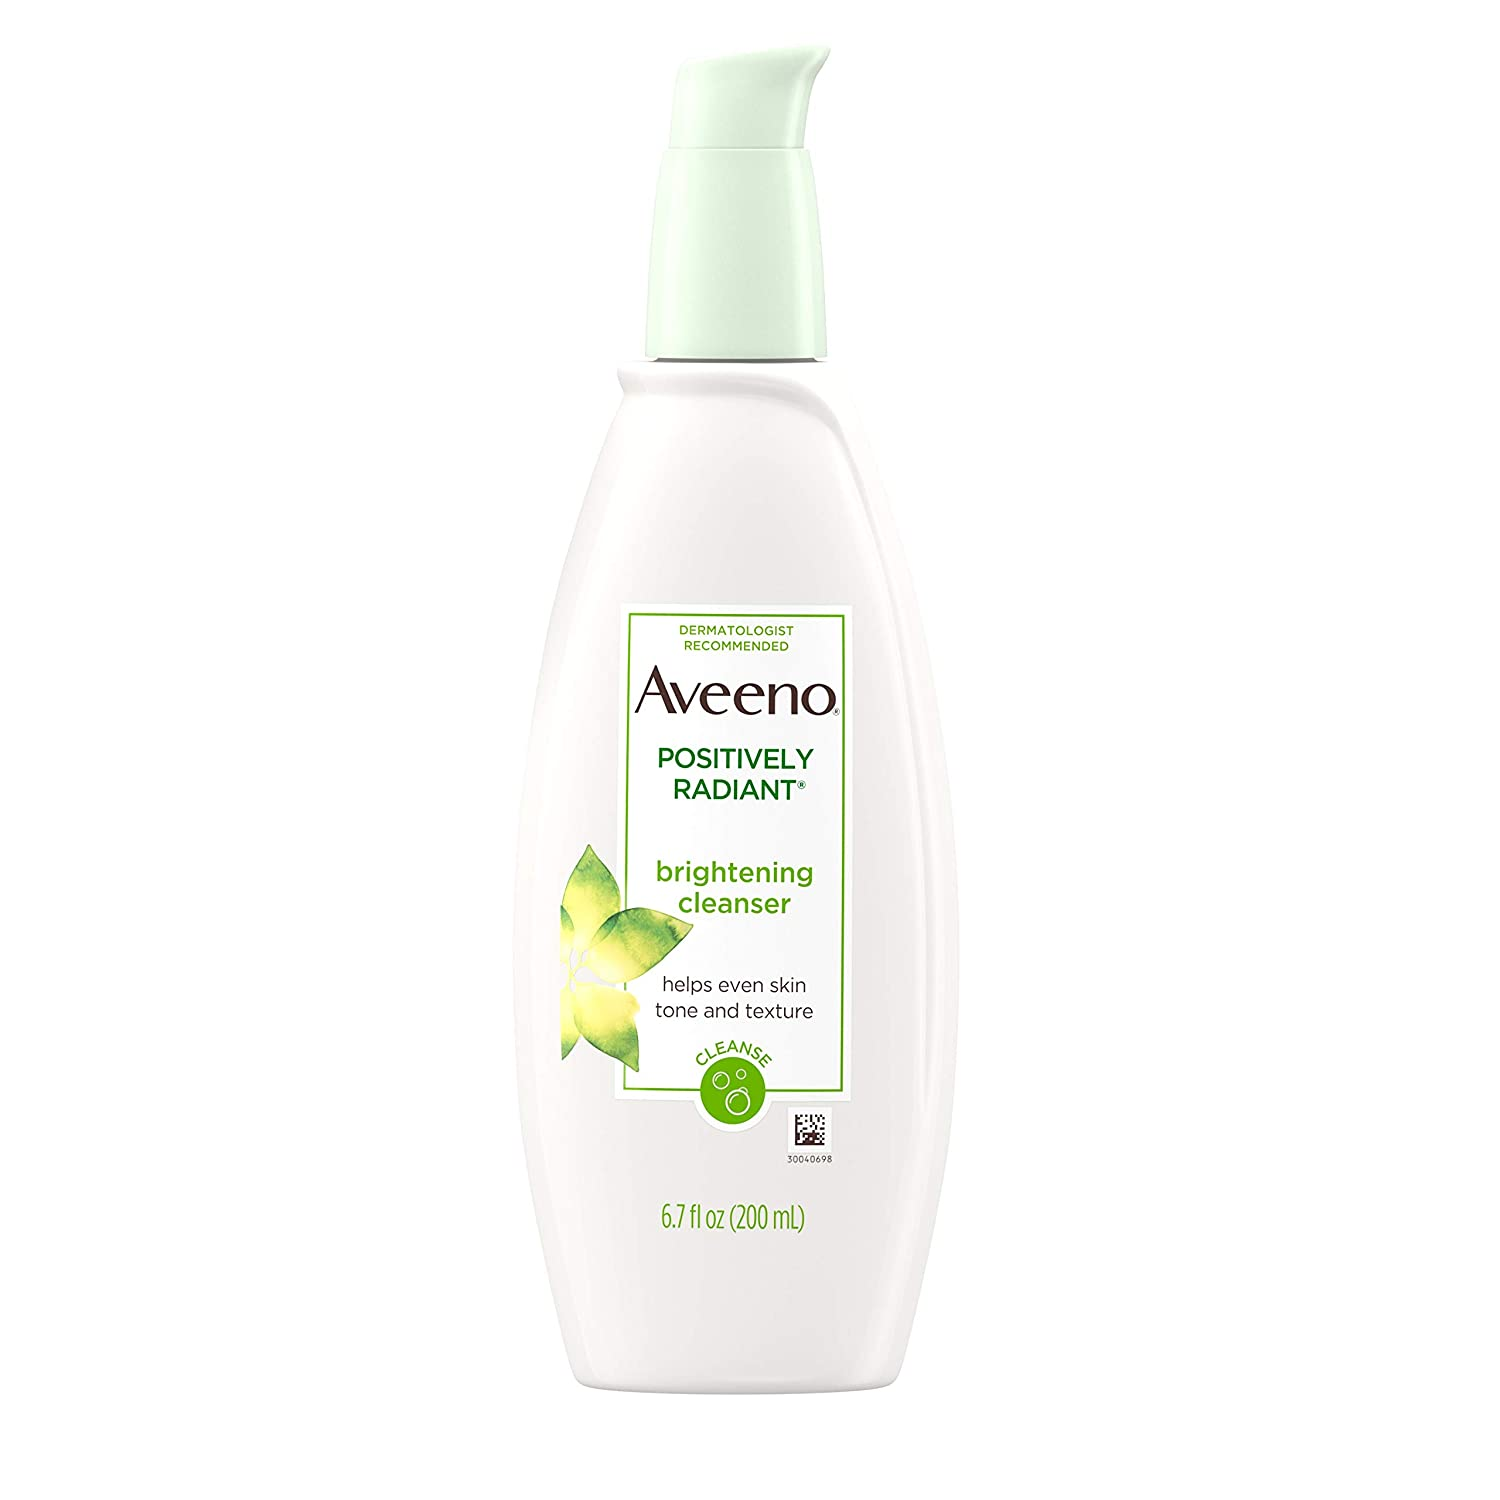 Aveeno Positively Radiant Brightening Facial Cleanser for Sensitive Skin, Non-Comedogenic, Oil-Free, Soap-Free & Hypoallergenic, 6.7 fl. oz